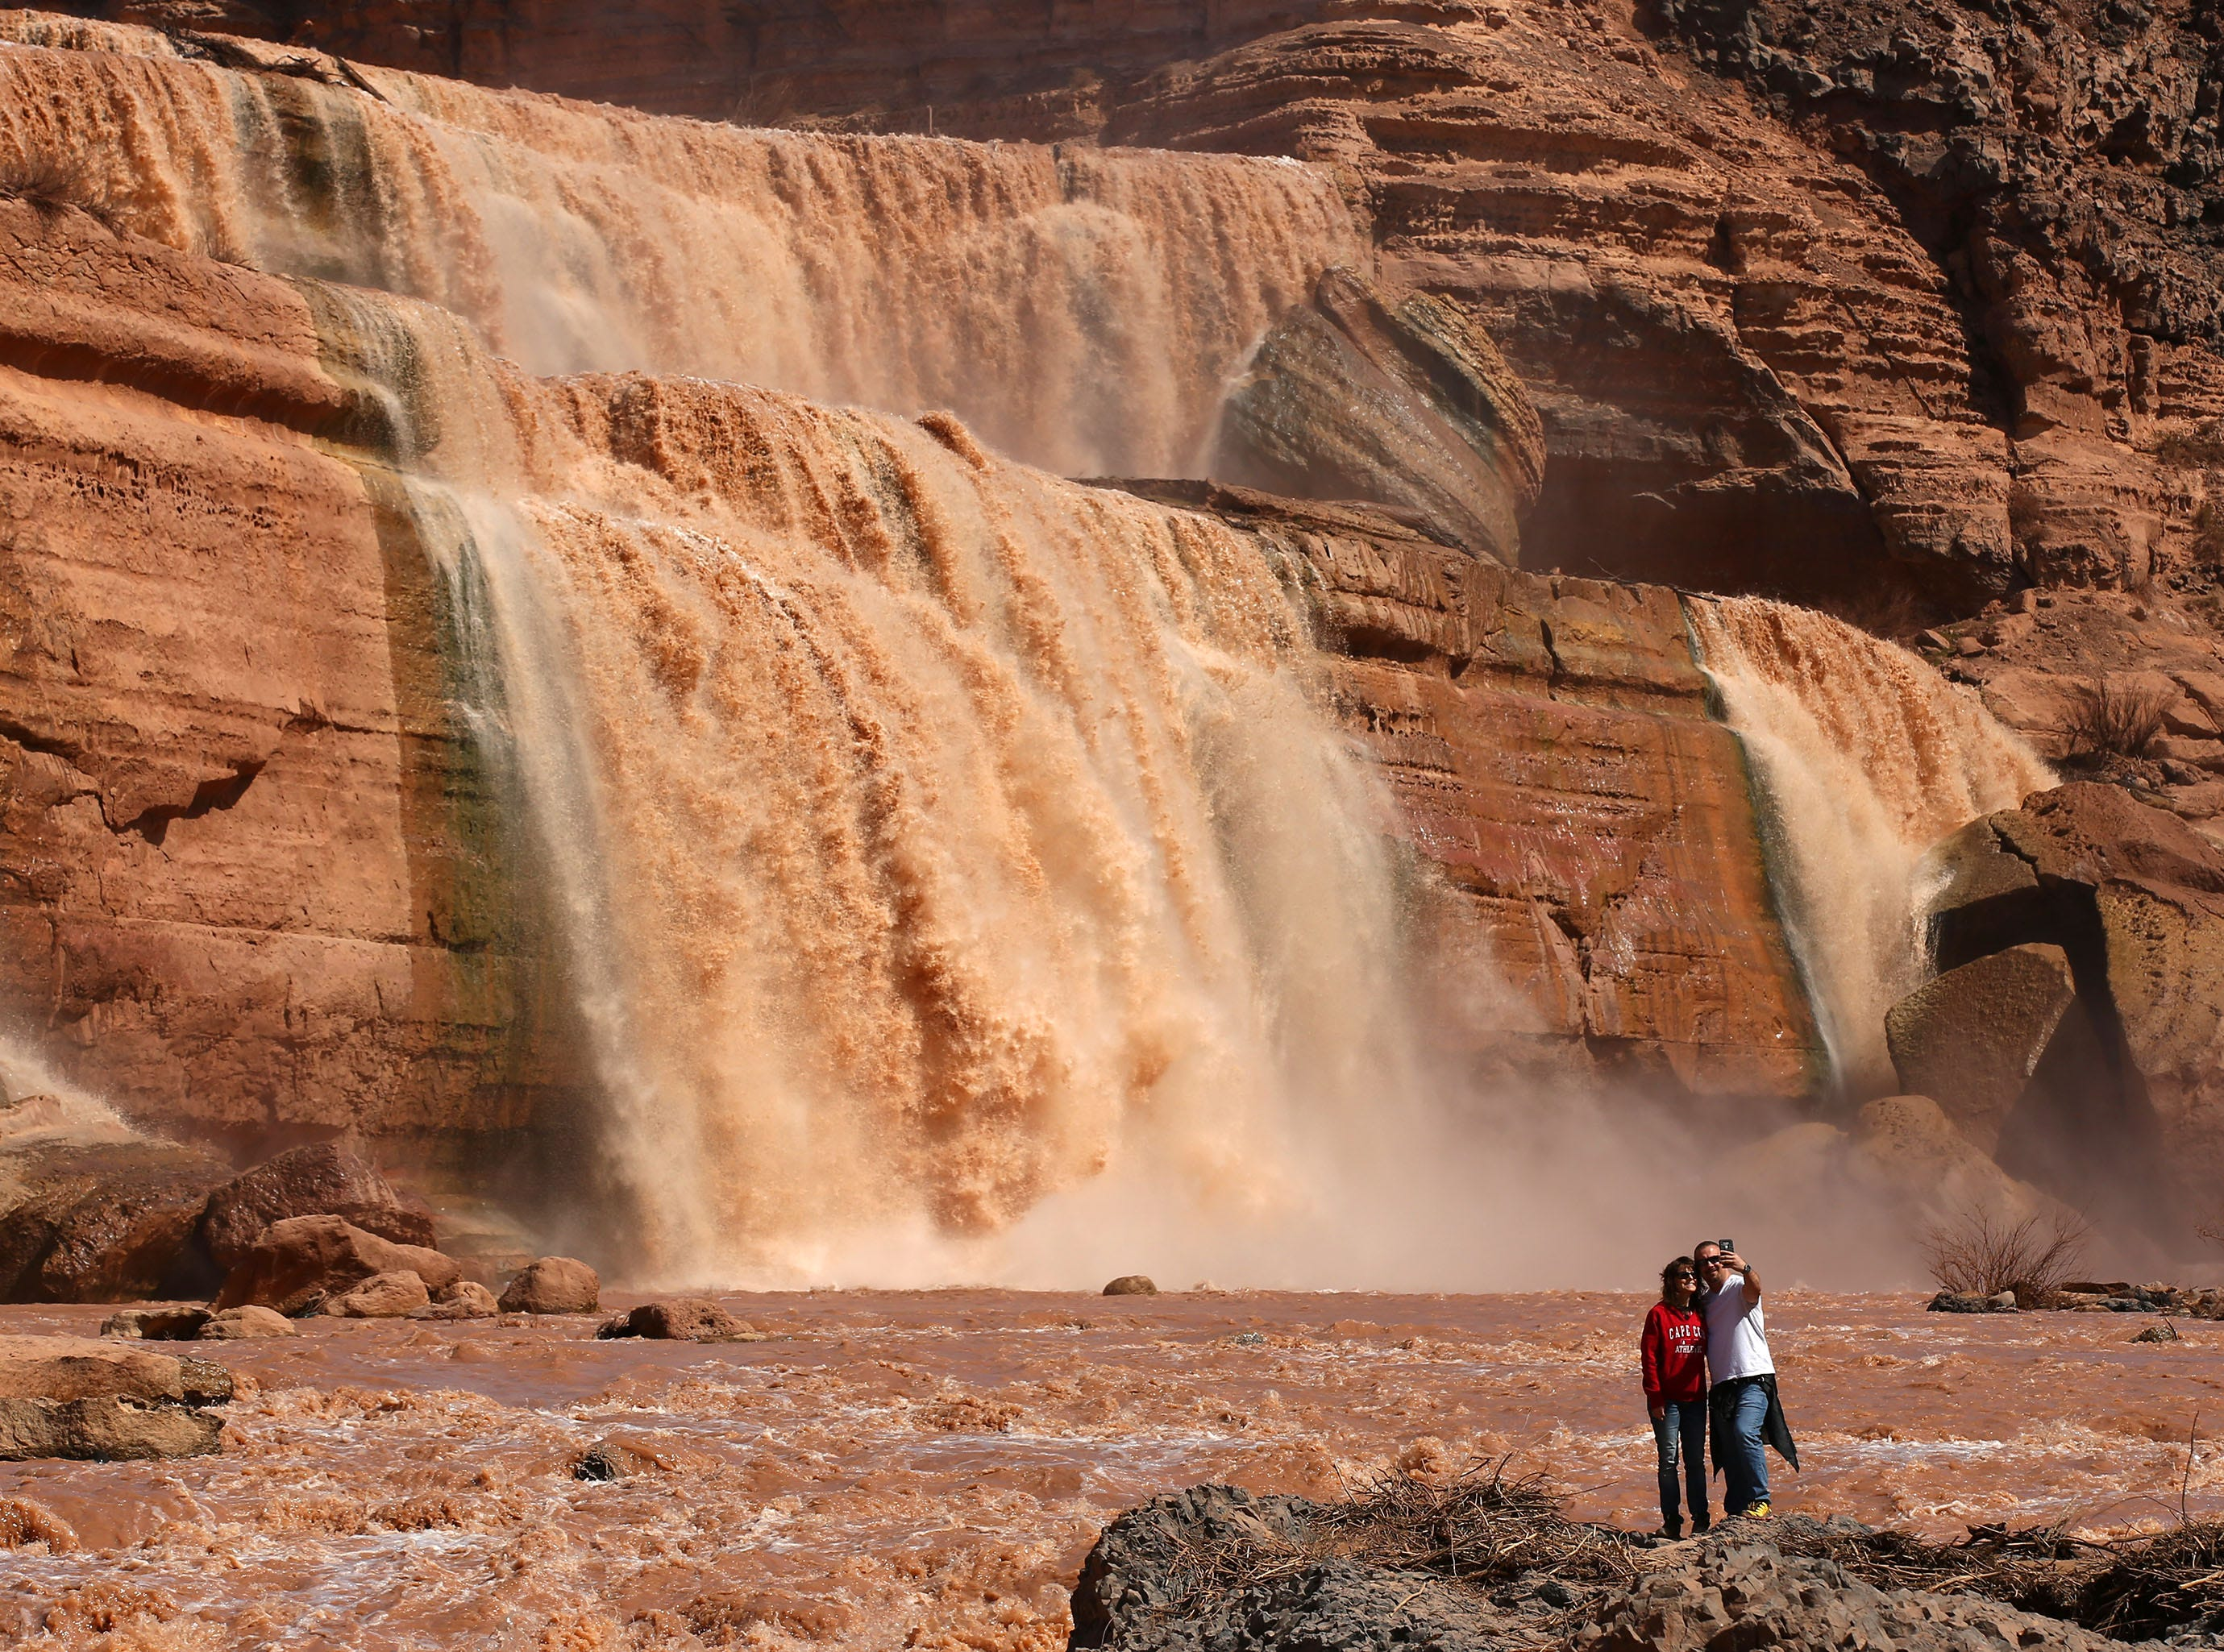 Tourists take a selfie at Grand Falls in the Painted Desert on the Navajo Nation on March 28, 2019, near Leupp, Arizona. Melted snow and rain travels down the Little Colorado River to the 185-foot fall a.k.a. Chocolate Falls. Grand Falls is 18 feet taller than Niagara Falls.